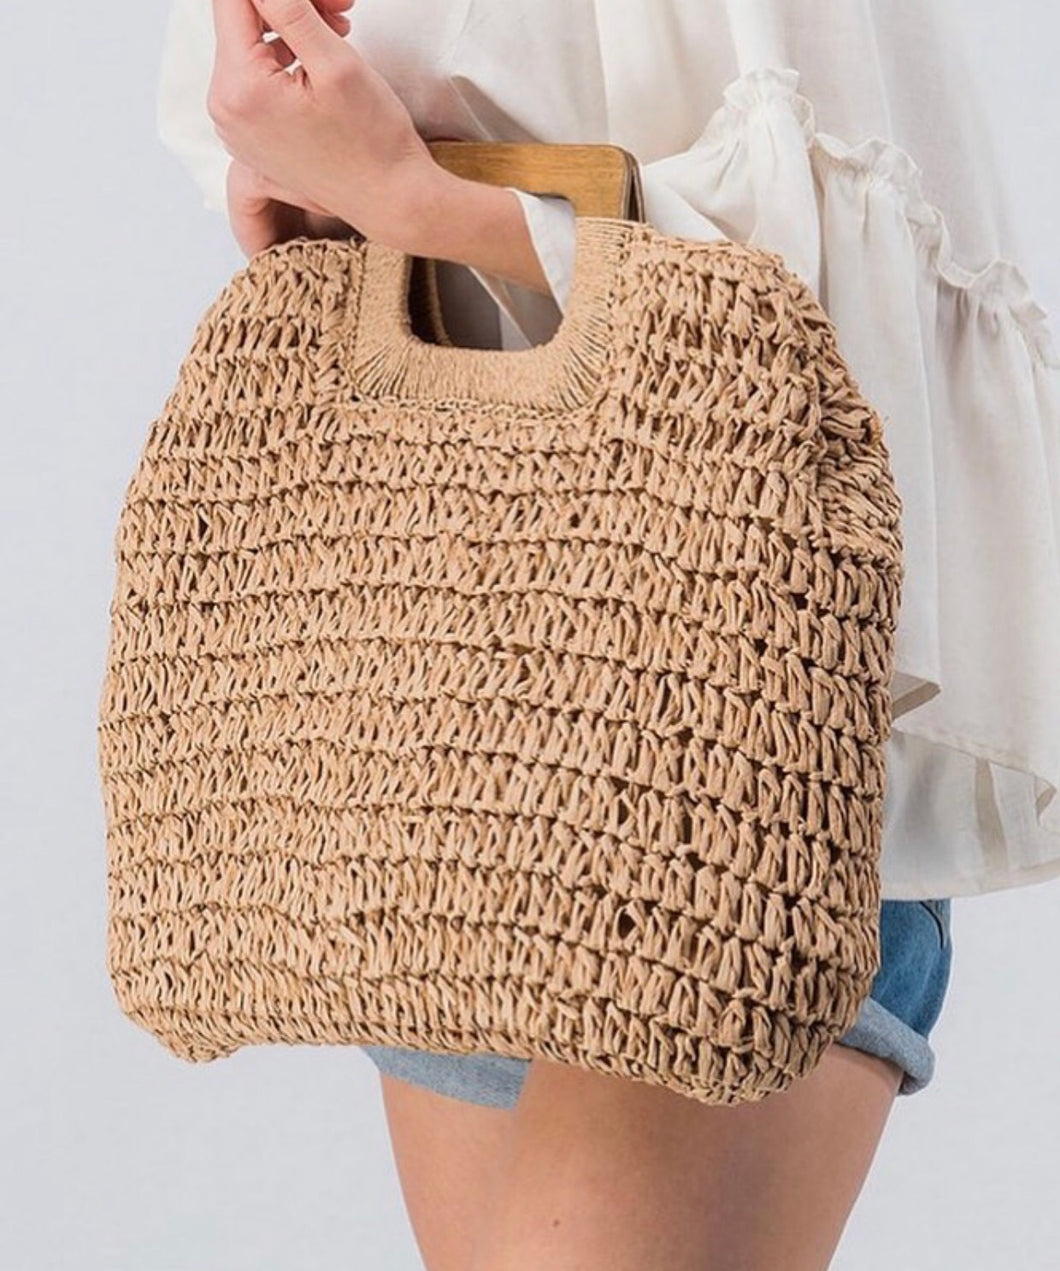 Wooden Handle Boho Bag